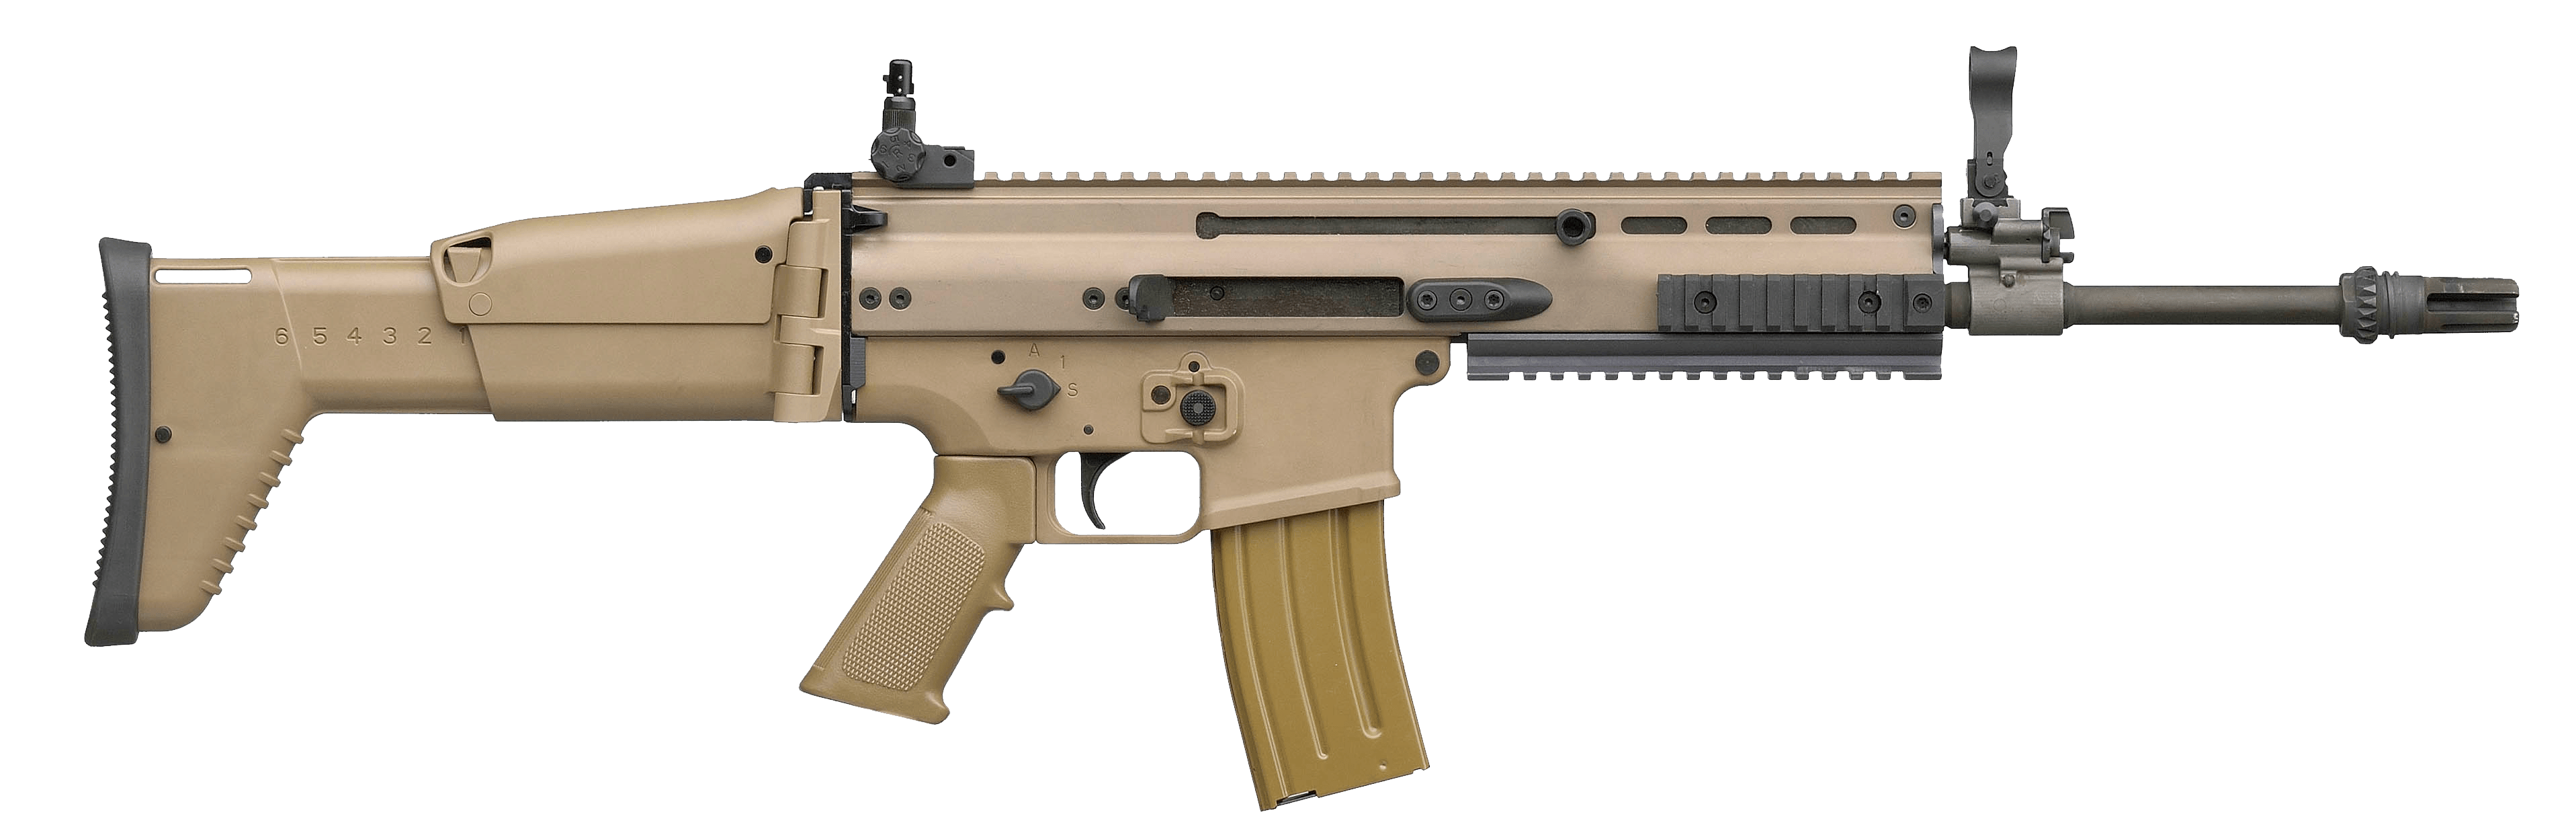 Scar Assault Rifle Png PNG Image